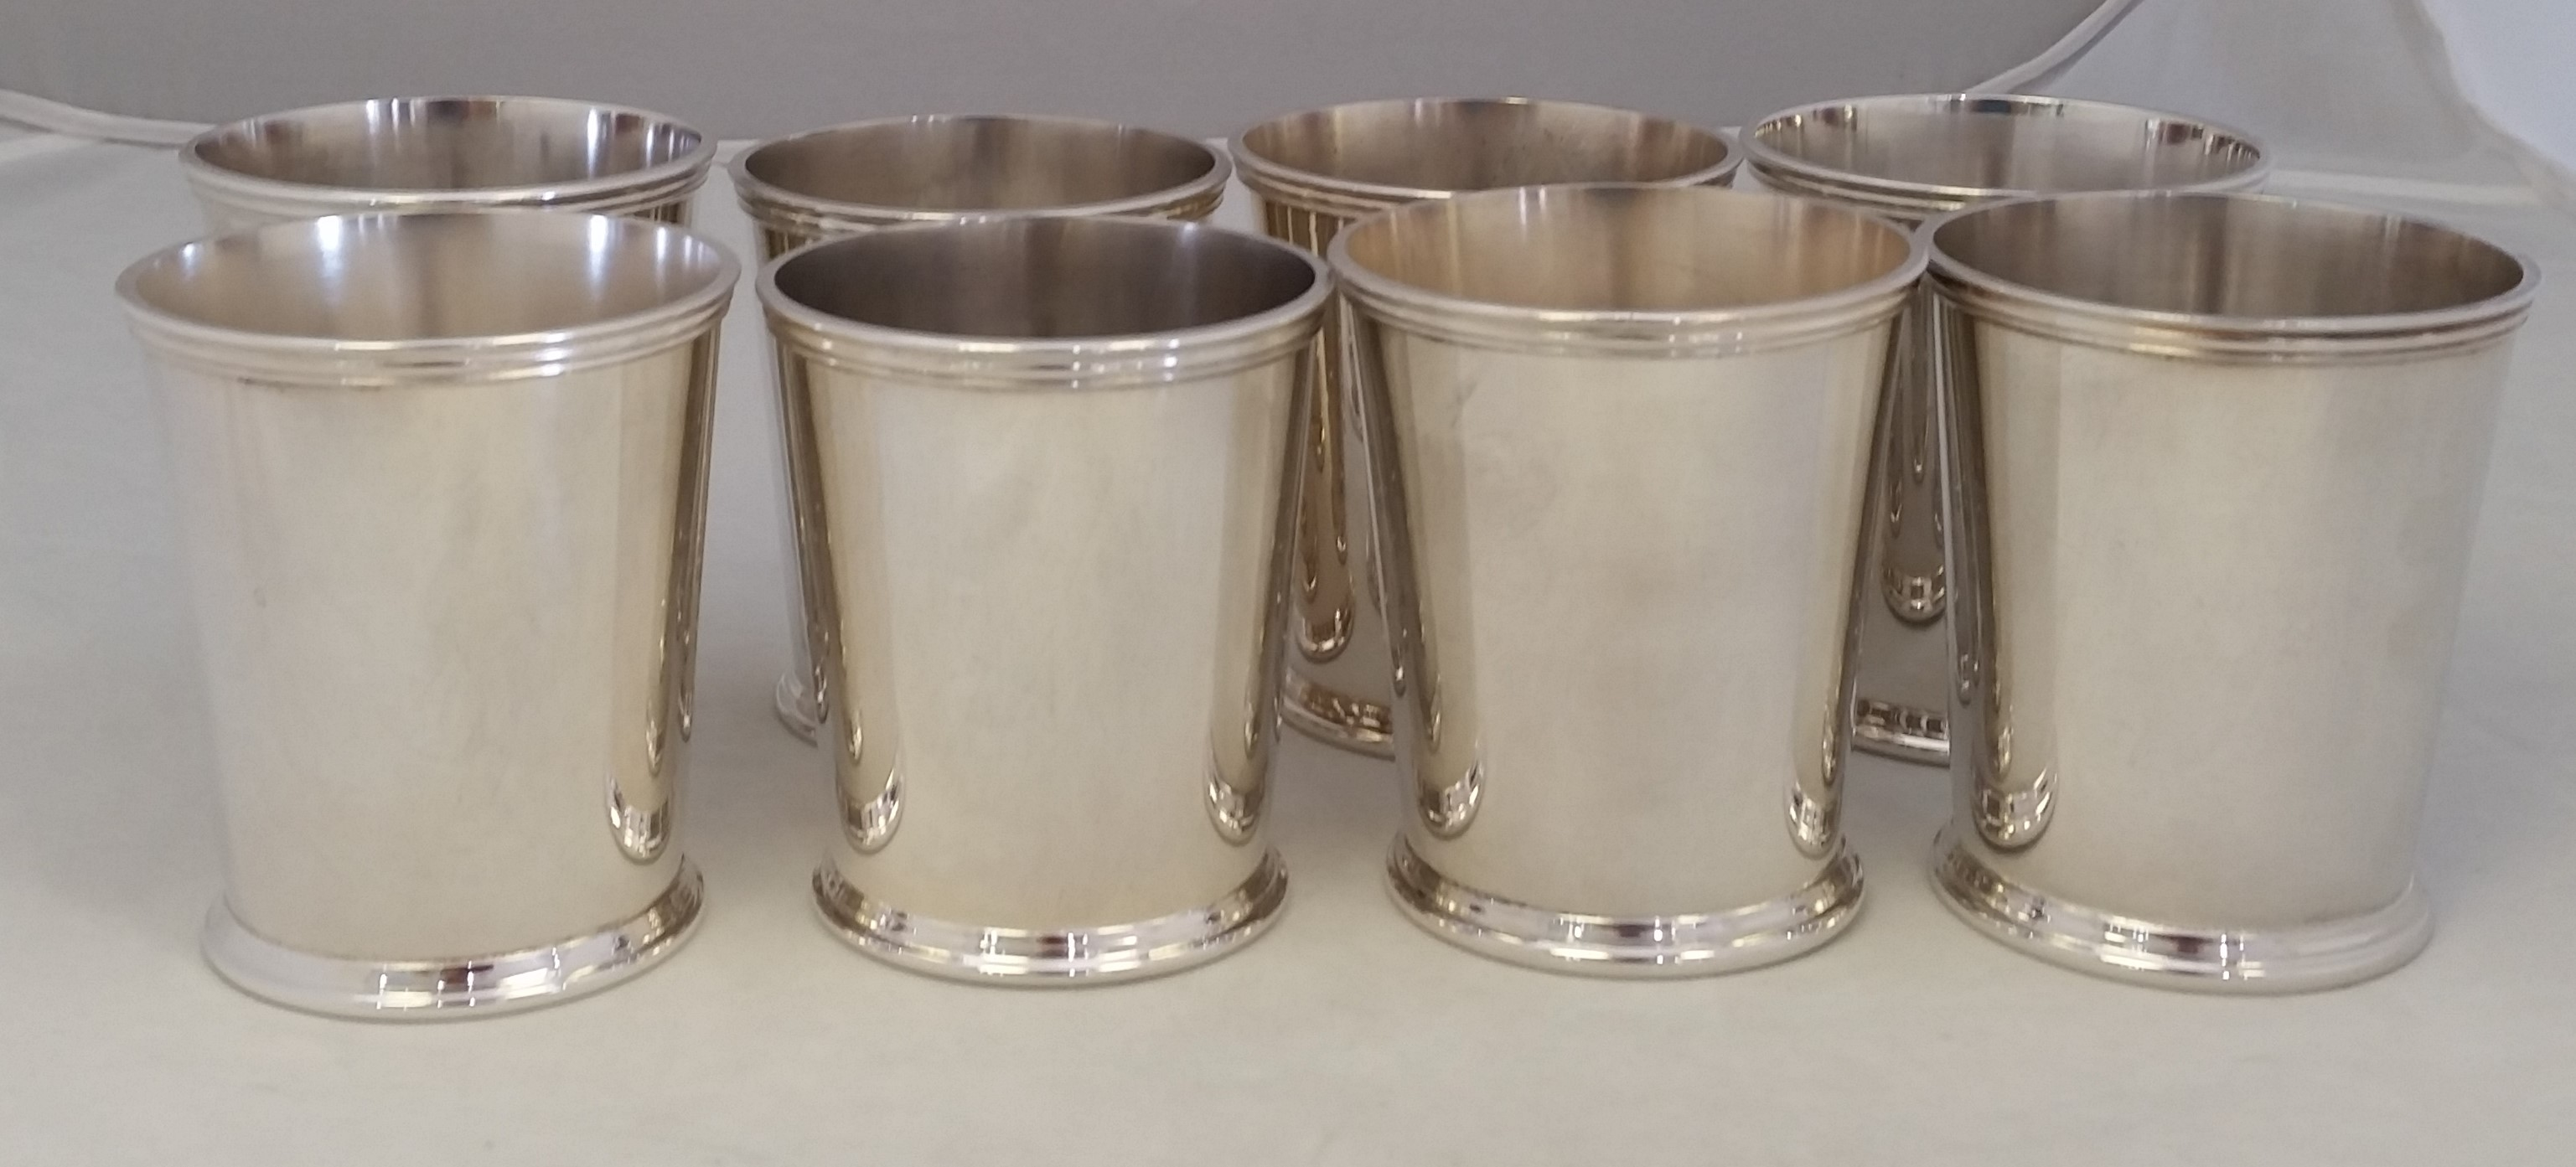 Crescent Silverware Mfg. Co - 'Silver Plated' - Mint Julep Cups set of 8 Estate